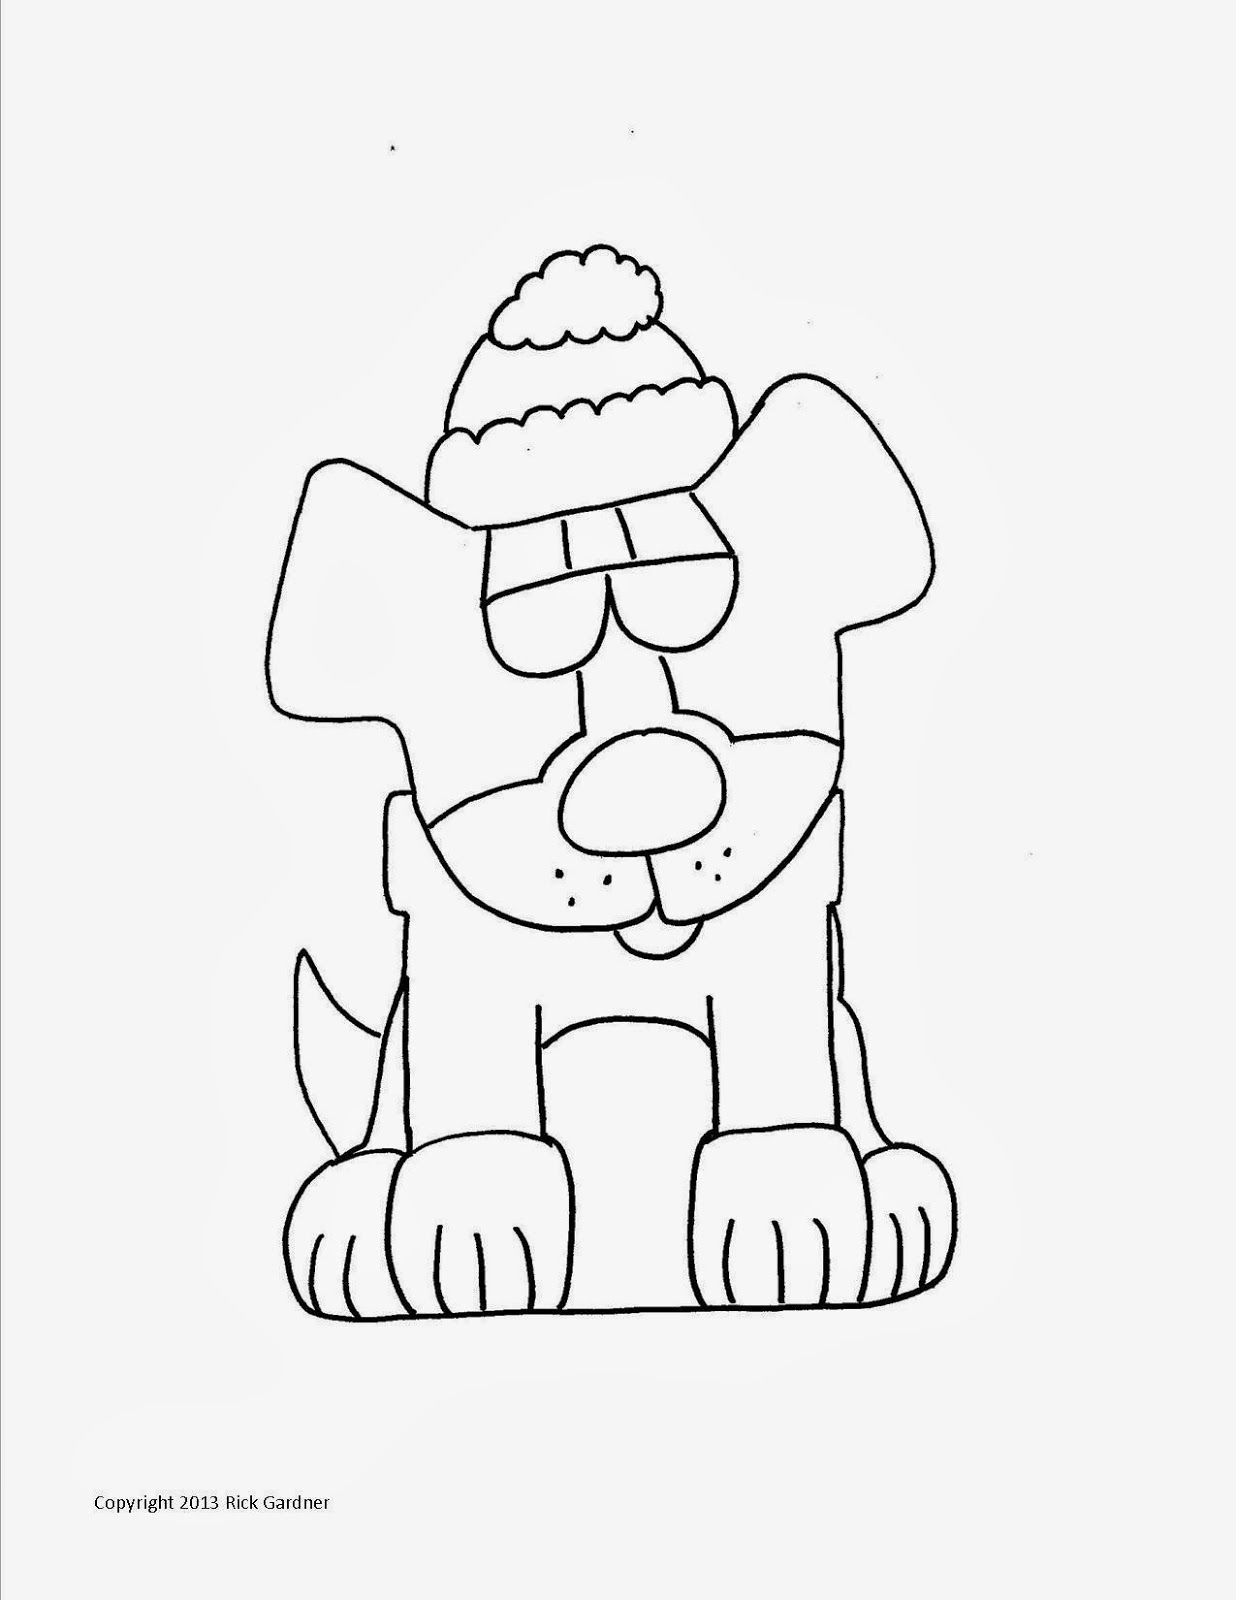 Coloring Pages Of Tom Brady Coloring Home Tom Brady Coloring Pages